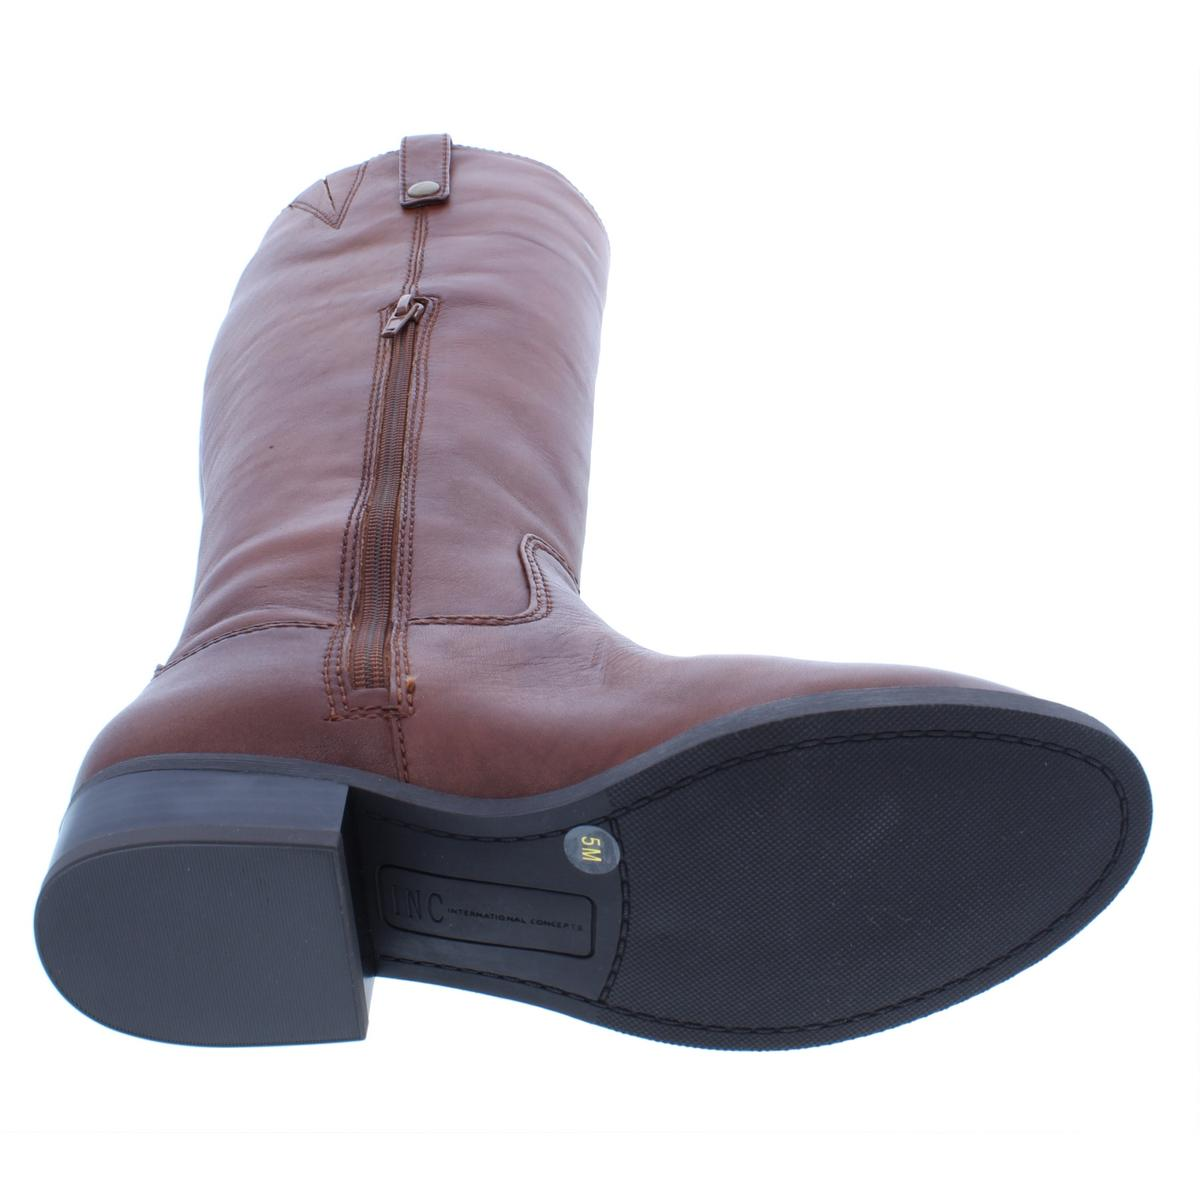 INC-Womens-Fawne-Leather-Knee-High-Tall-Riding-Boots-Shoes-BHFO-5020 thumbnail 10